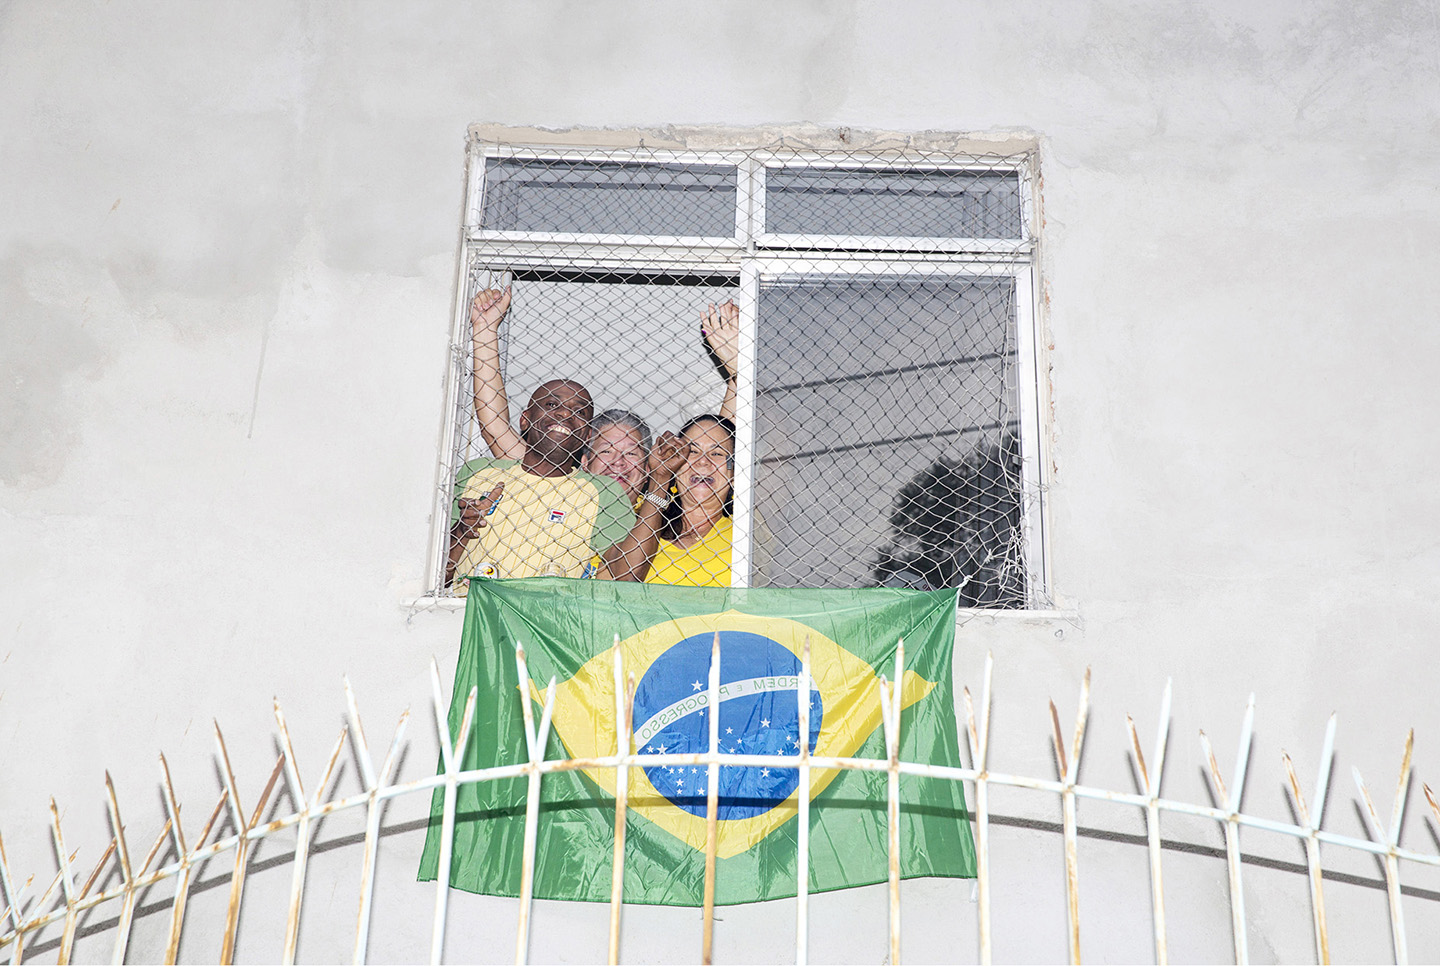 Brasilien, fotbolls VM 2014, RIO, WORLD CUP WINDOWS